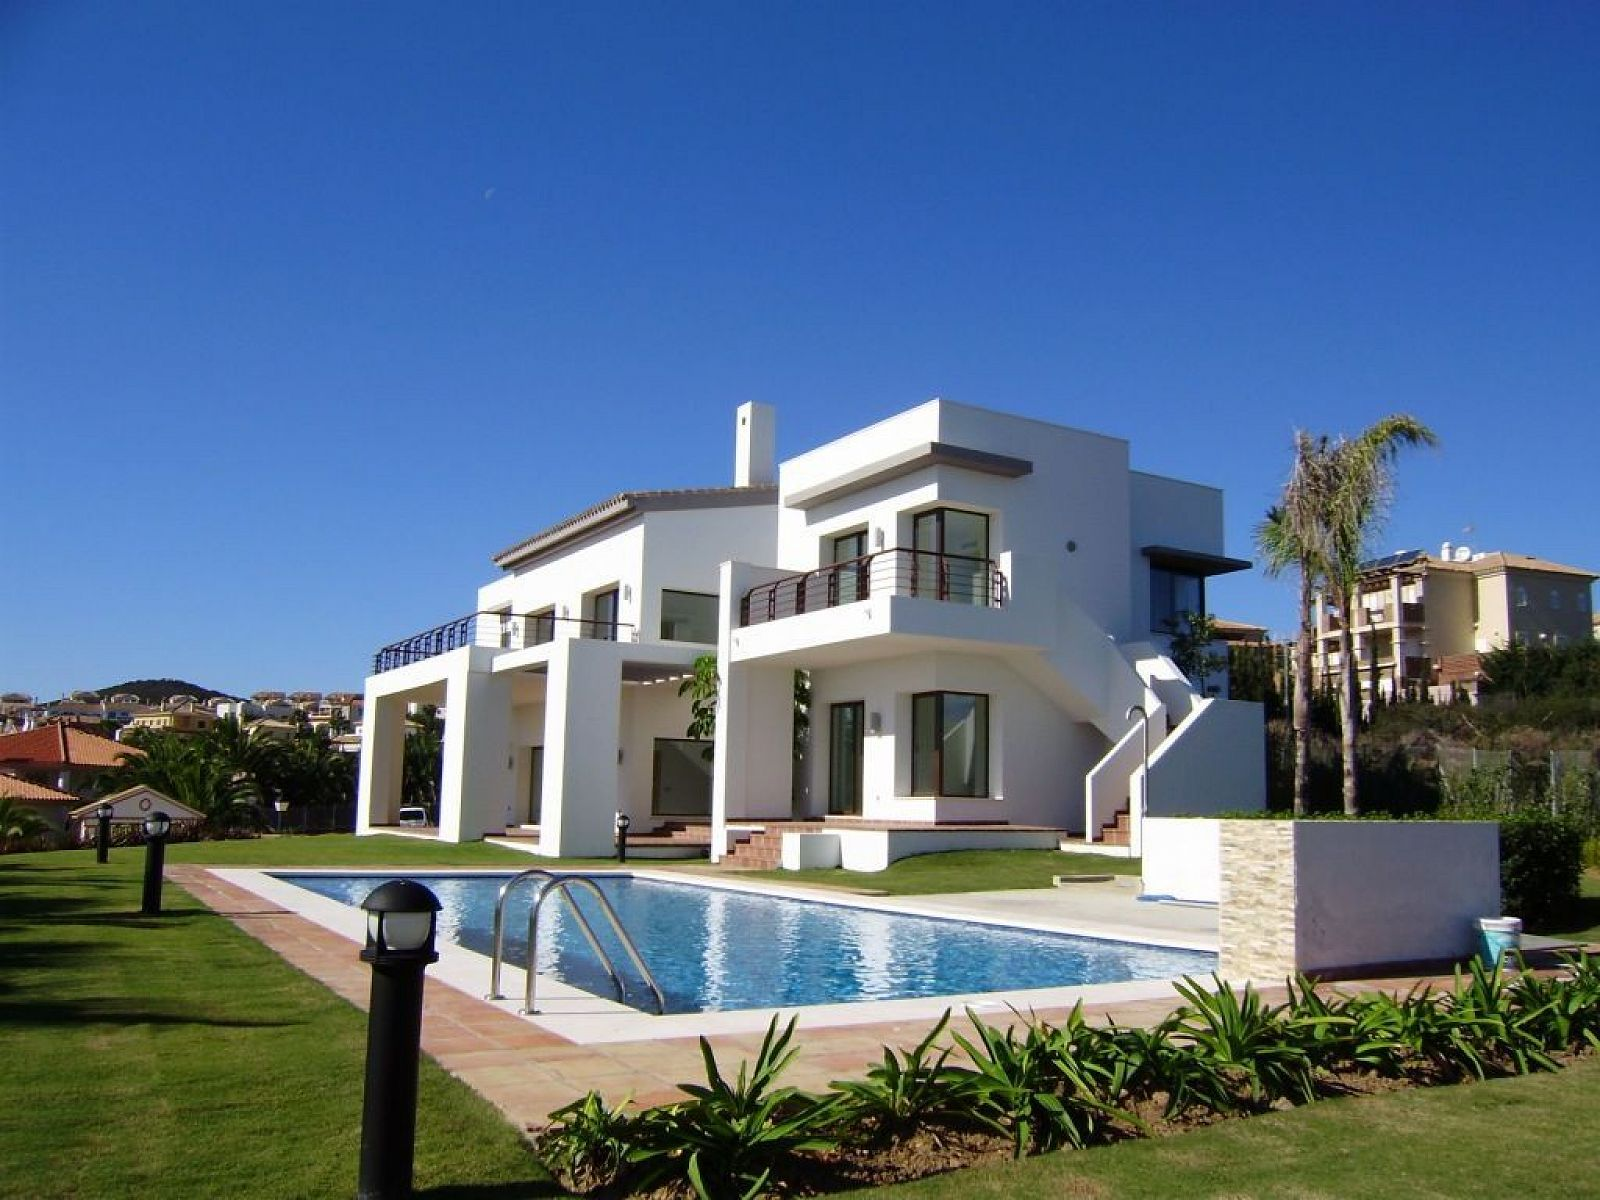 La Alcaidesa, Costa del Sol - Spain | Sale, House Five-bedroom (6 ...